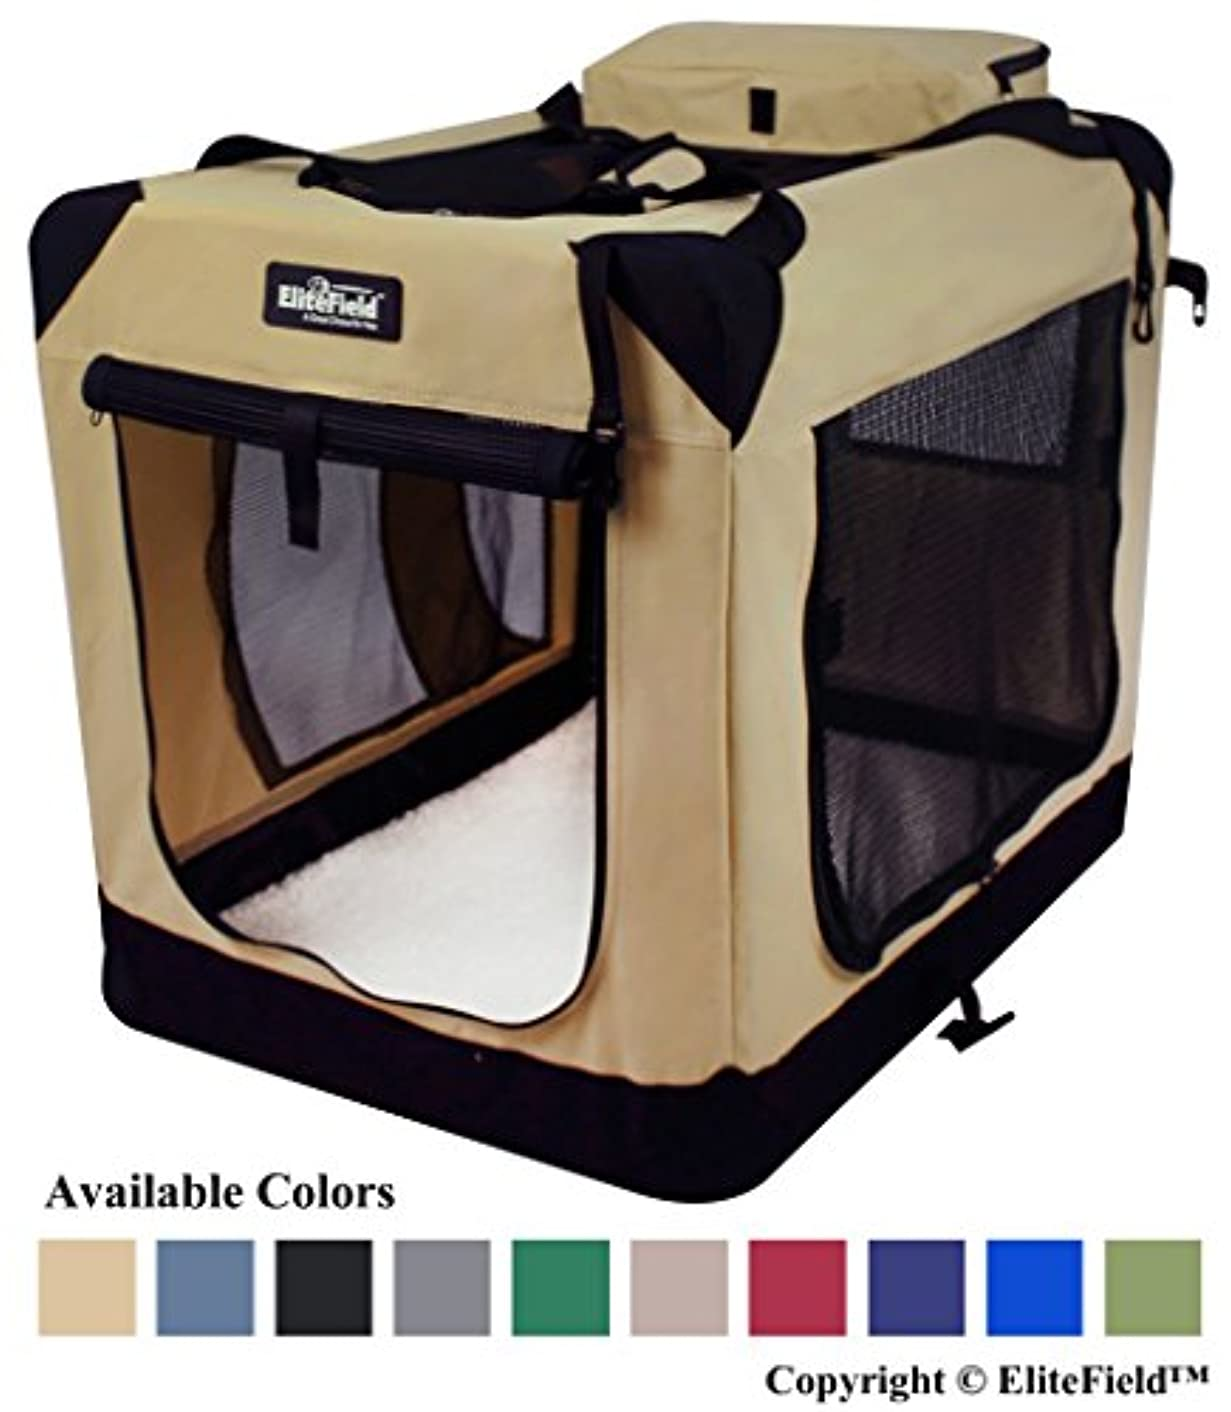 EliteField 3-Door Folding Soft Dog Crate, Indoor & Outdoor Pet Home, Multiple Sizes and Colors Available